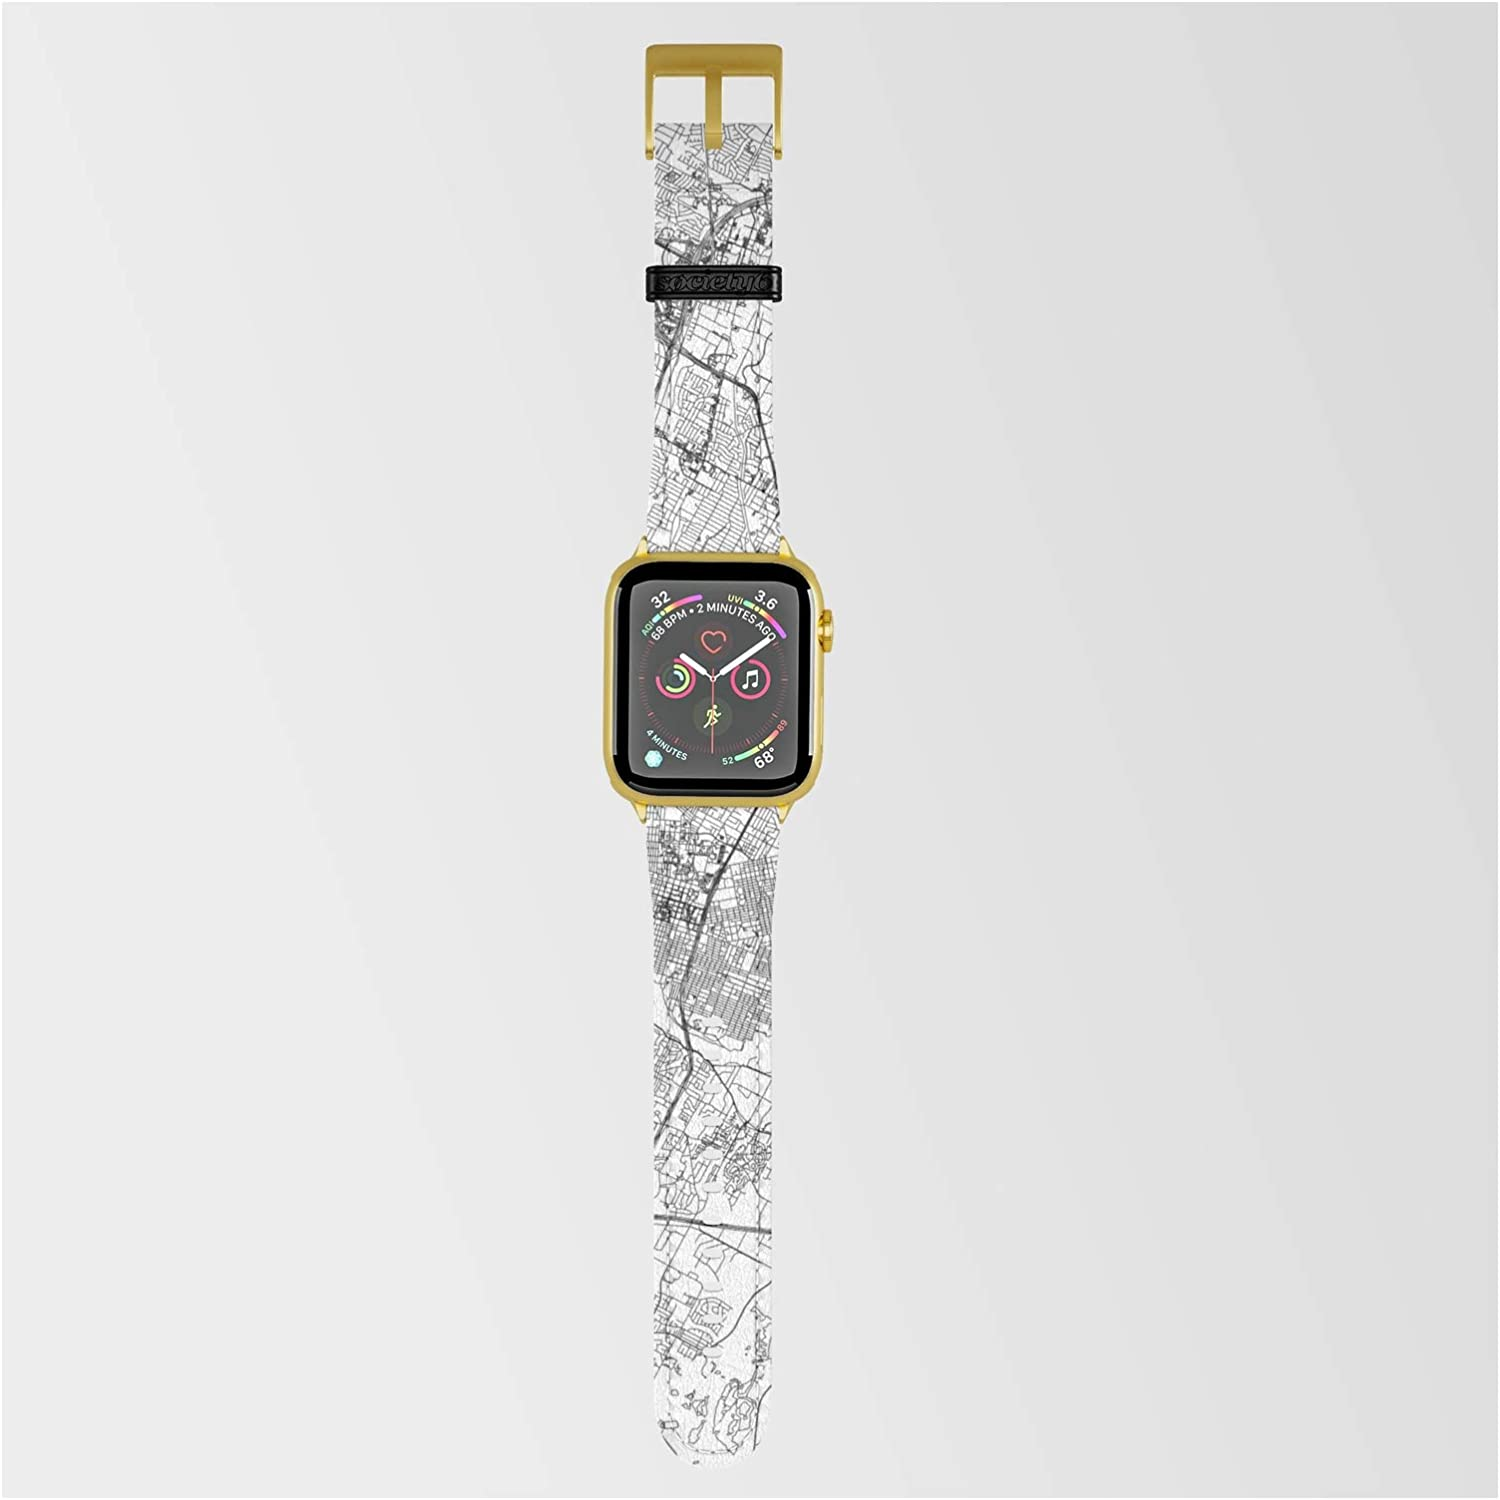 Ranking integrated 1st place Austin White Map Max 82% OFF by Multiplicity Band Smartwatch w Compatible on